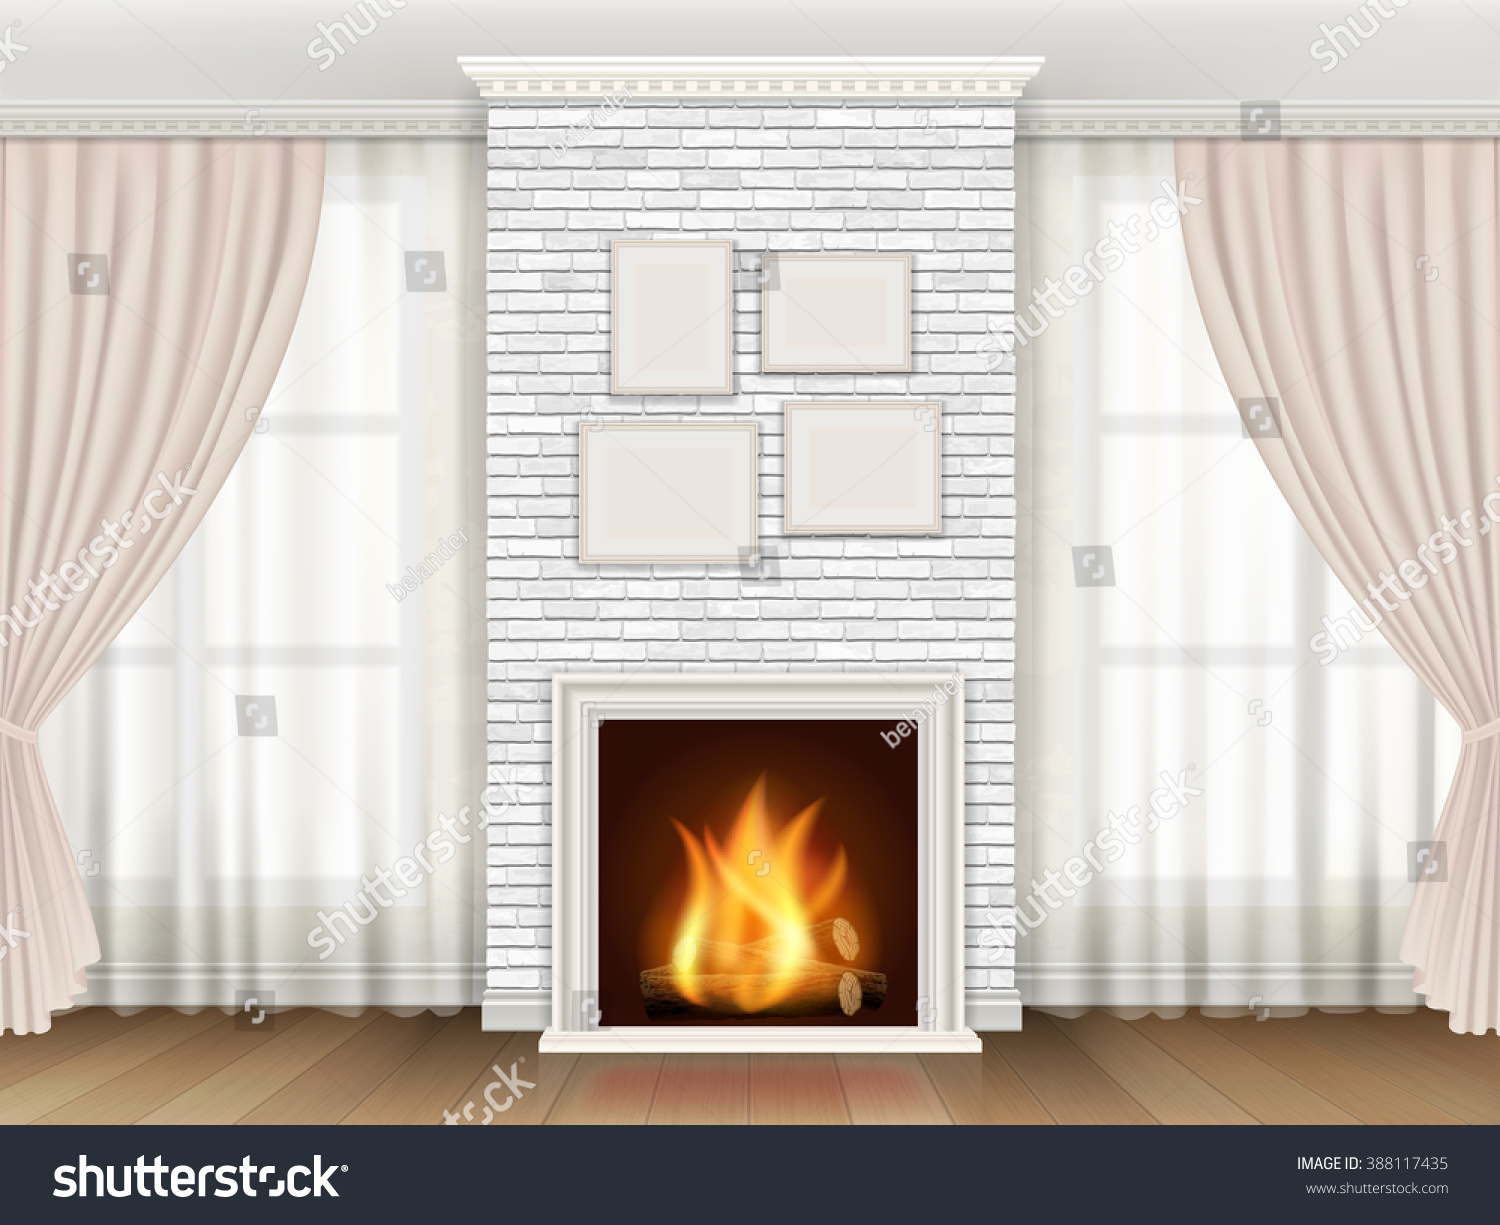 classic interior white brick fireplace windows stock vector